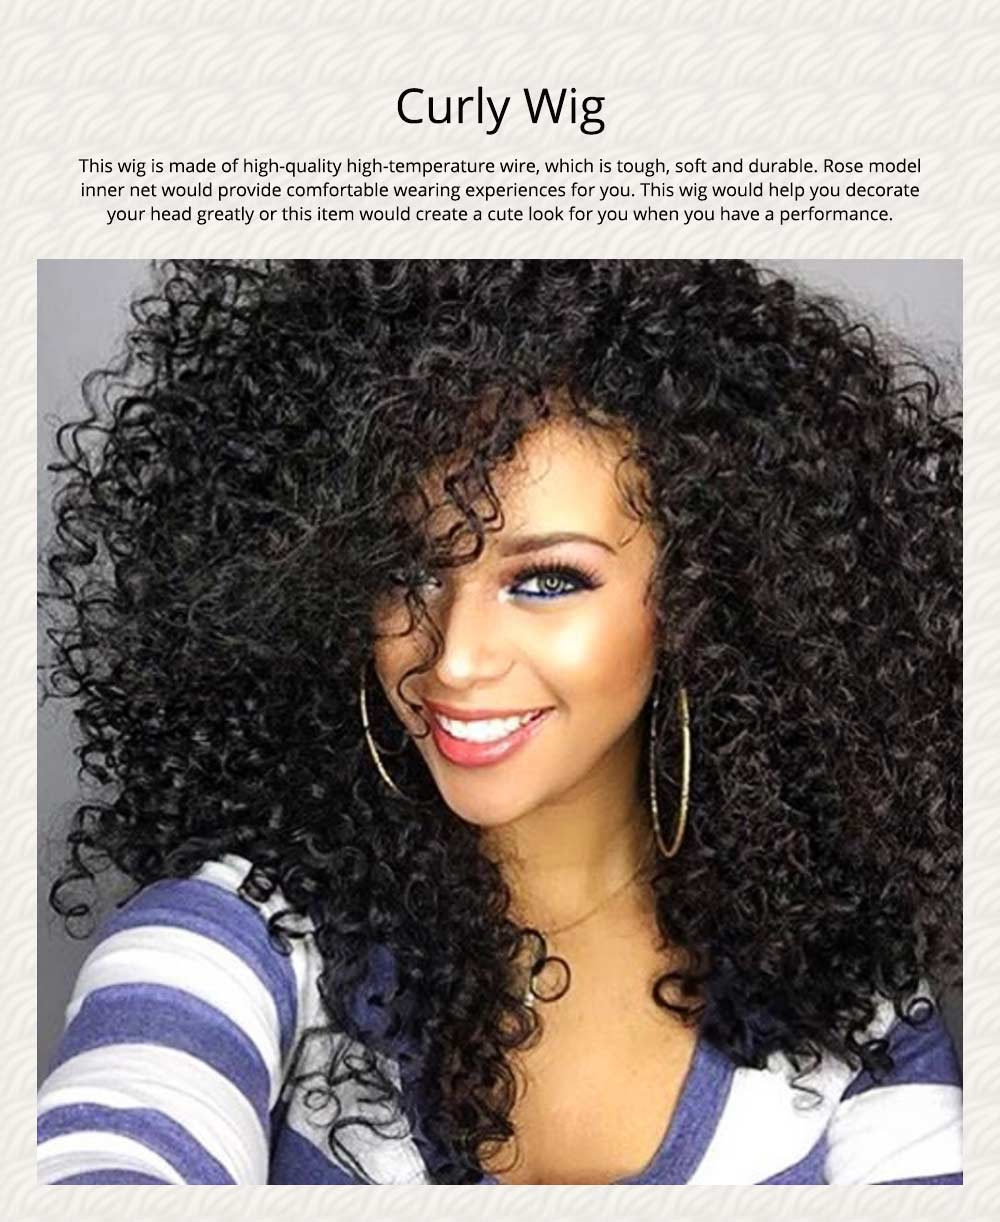 Delicate Short Fashion Kinky Curly Wig for Women, Tough High-temperature Wire Synthetic Hair for Ladies 0